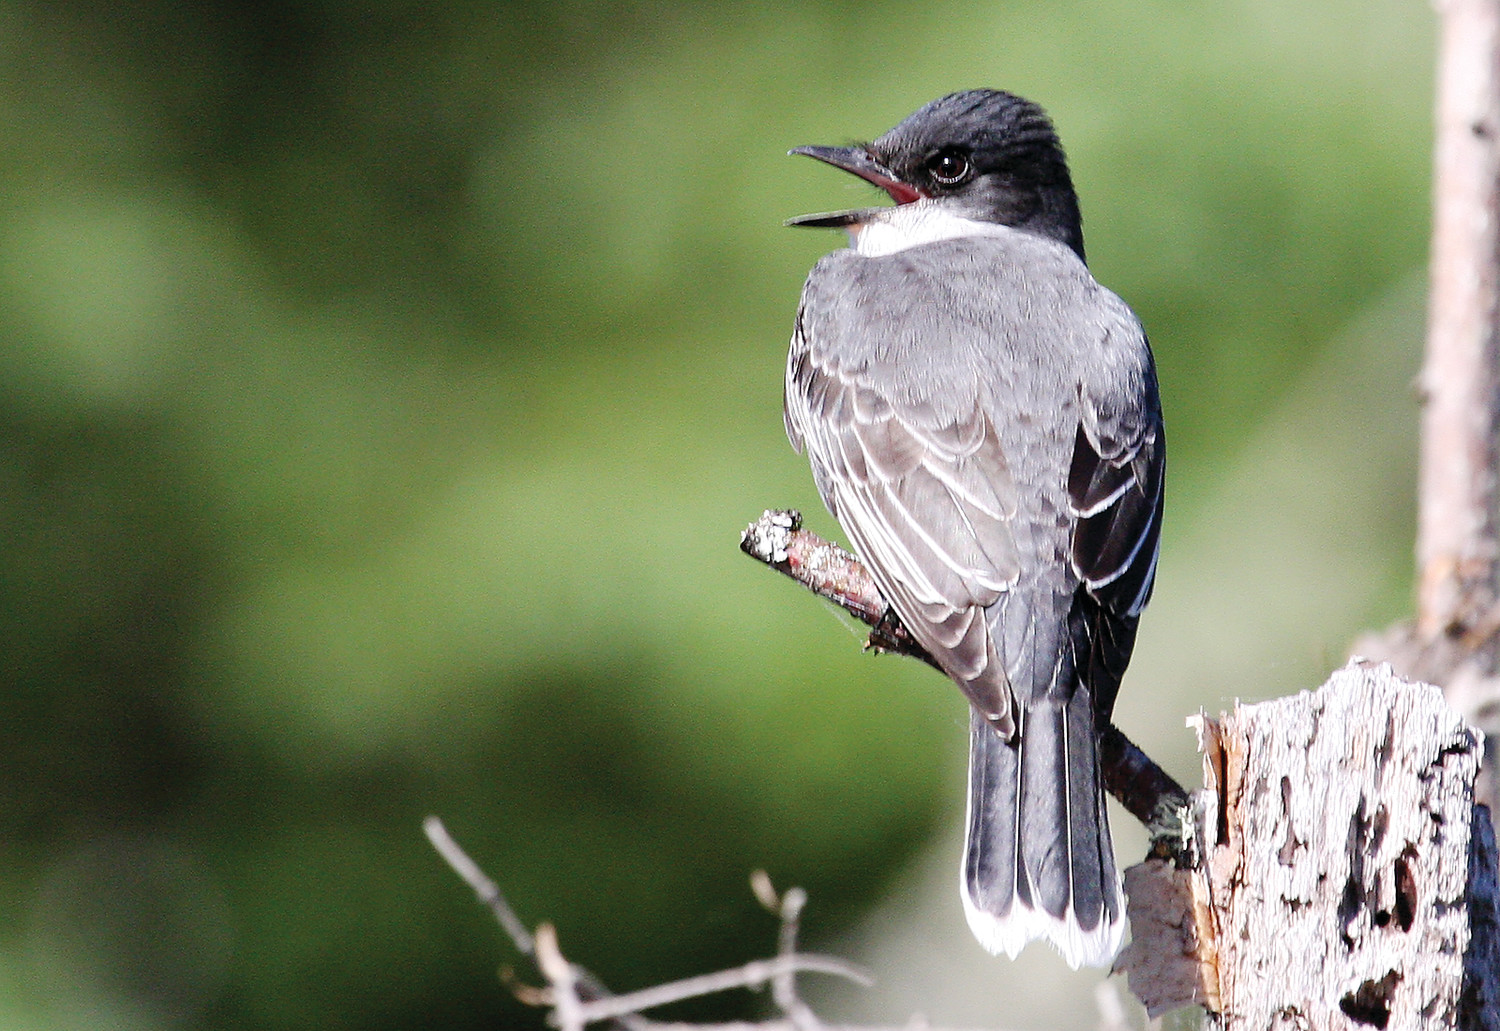 An eastern kingbird sounds off from his perch at the beaver pond.